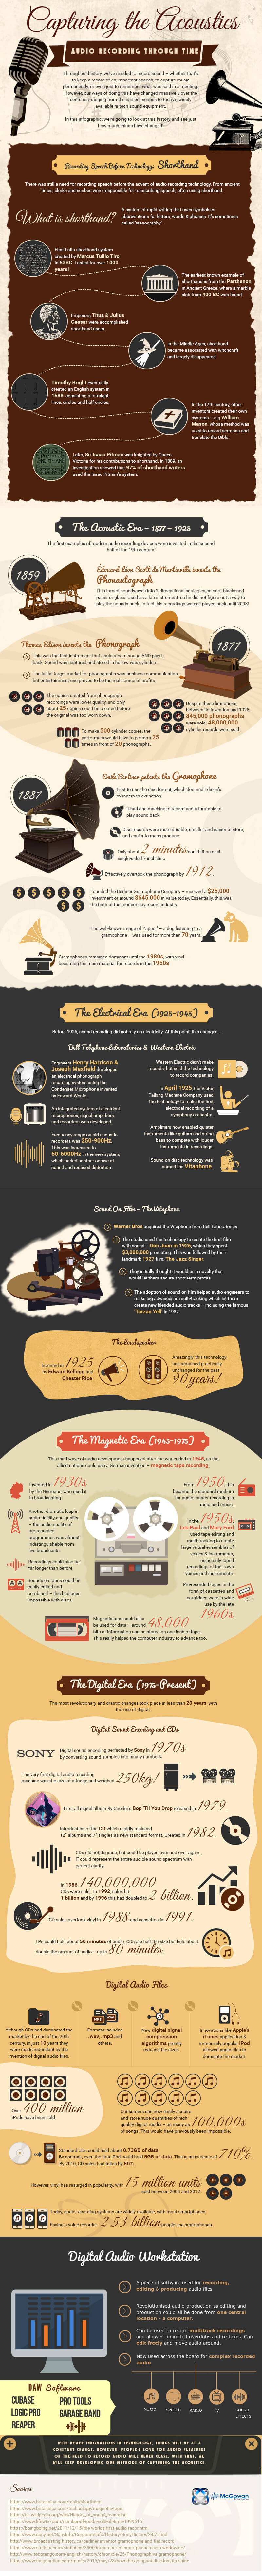 Infographic on the History of Audio Recording